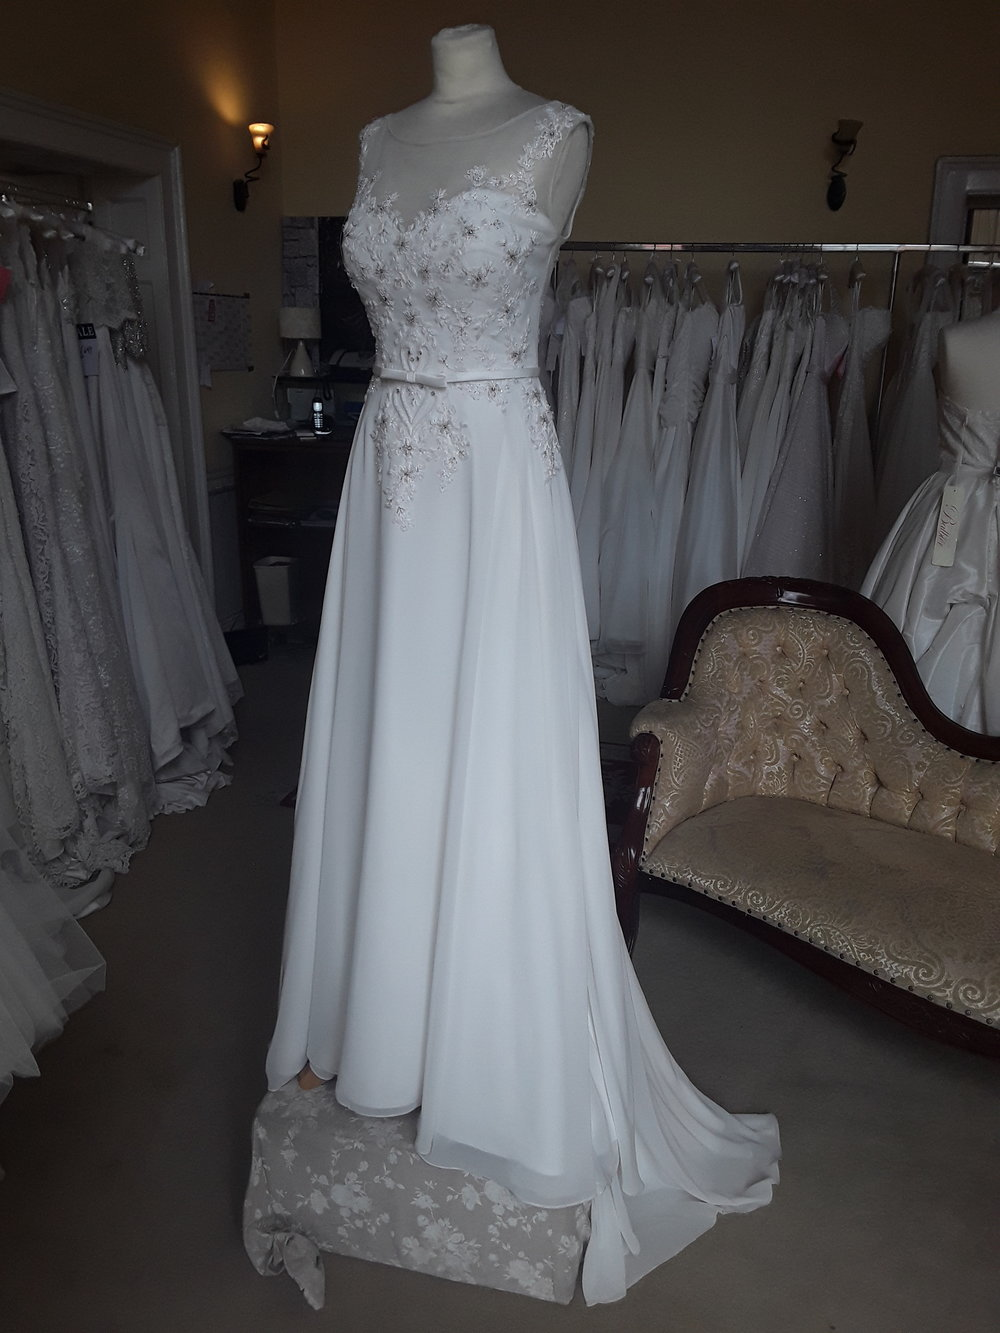 White Rose A-line chiffon dress.  Colour: ivory  Size: 14  Was €1,495 now €1,000  Ref: E100/Adele